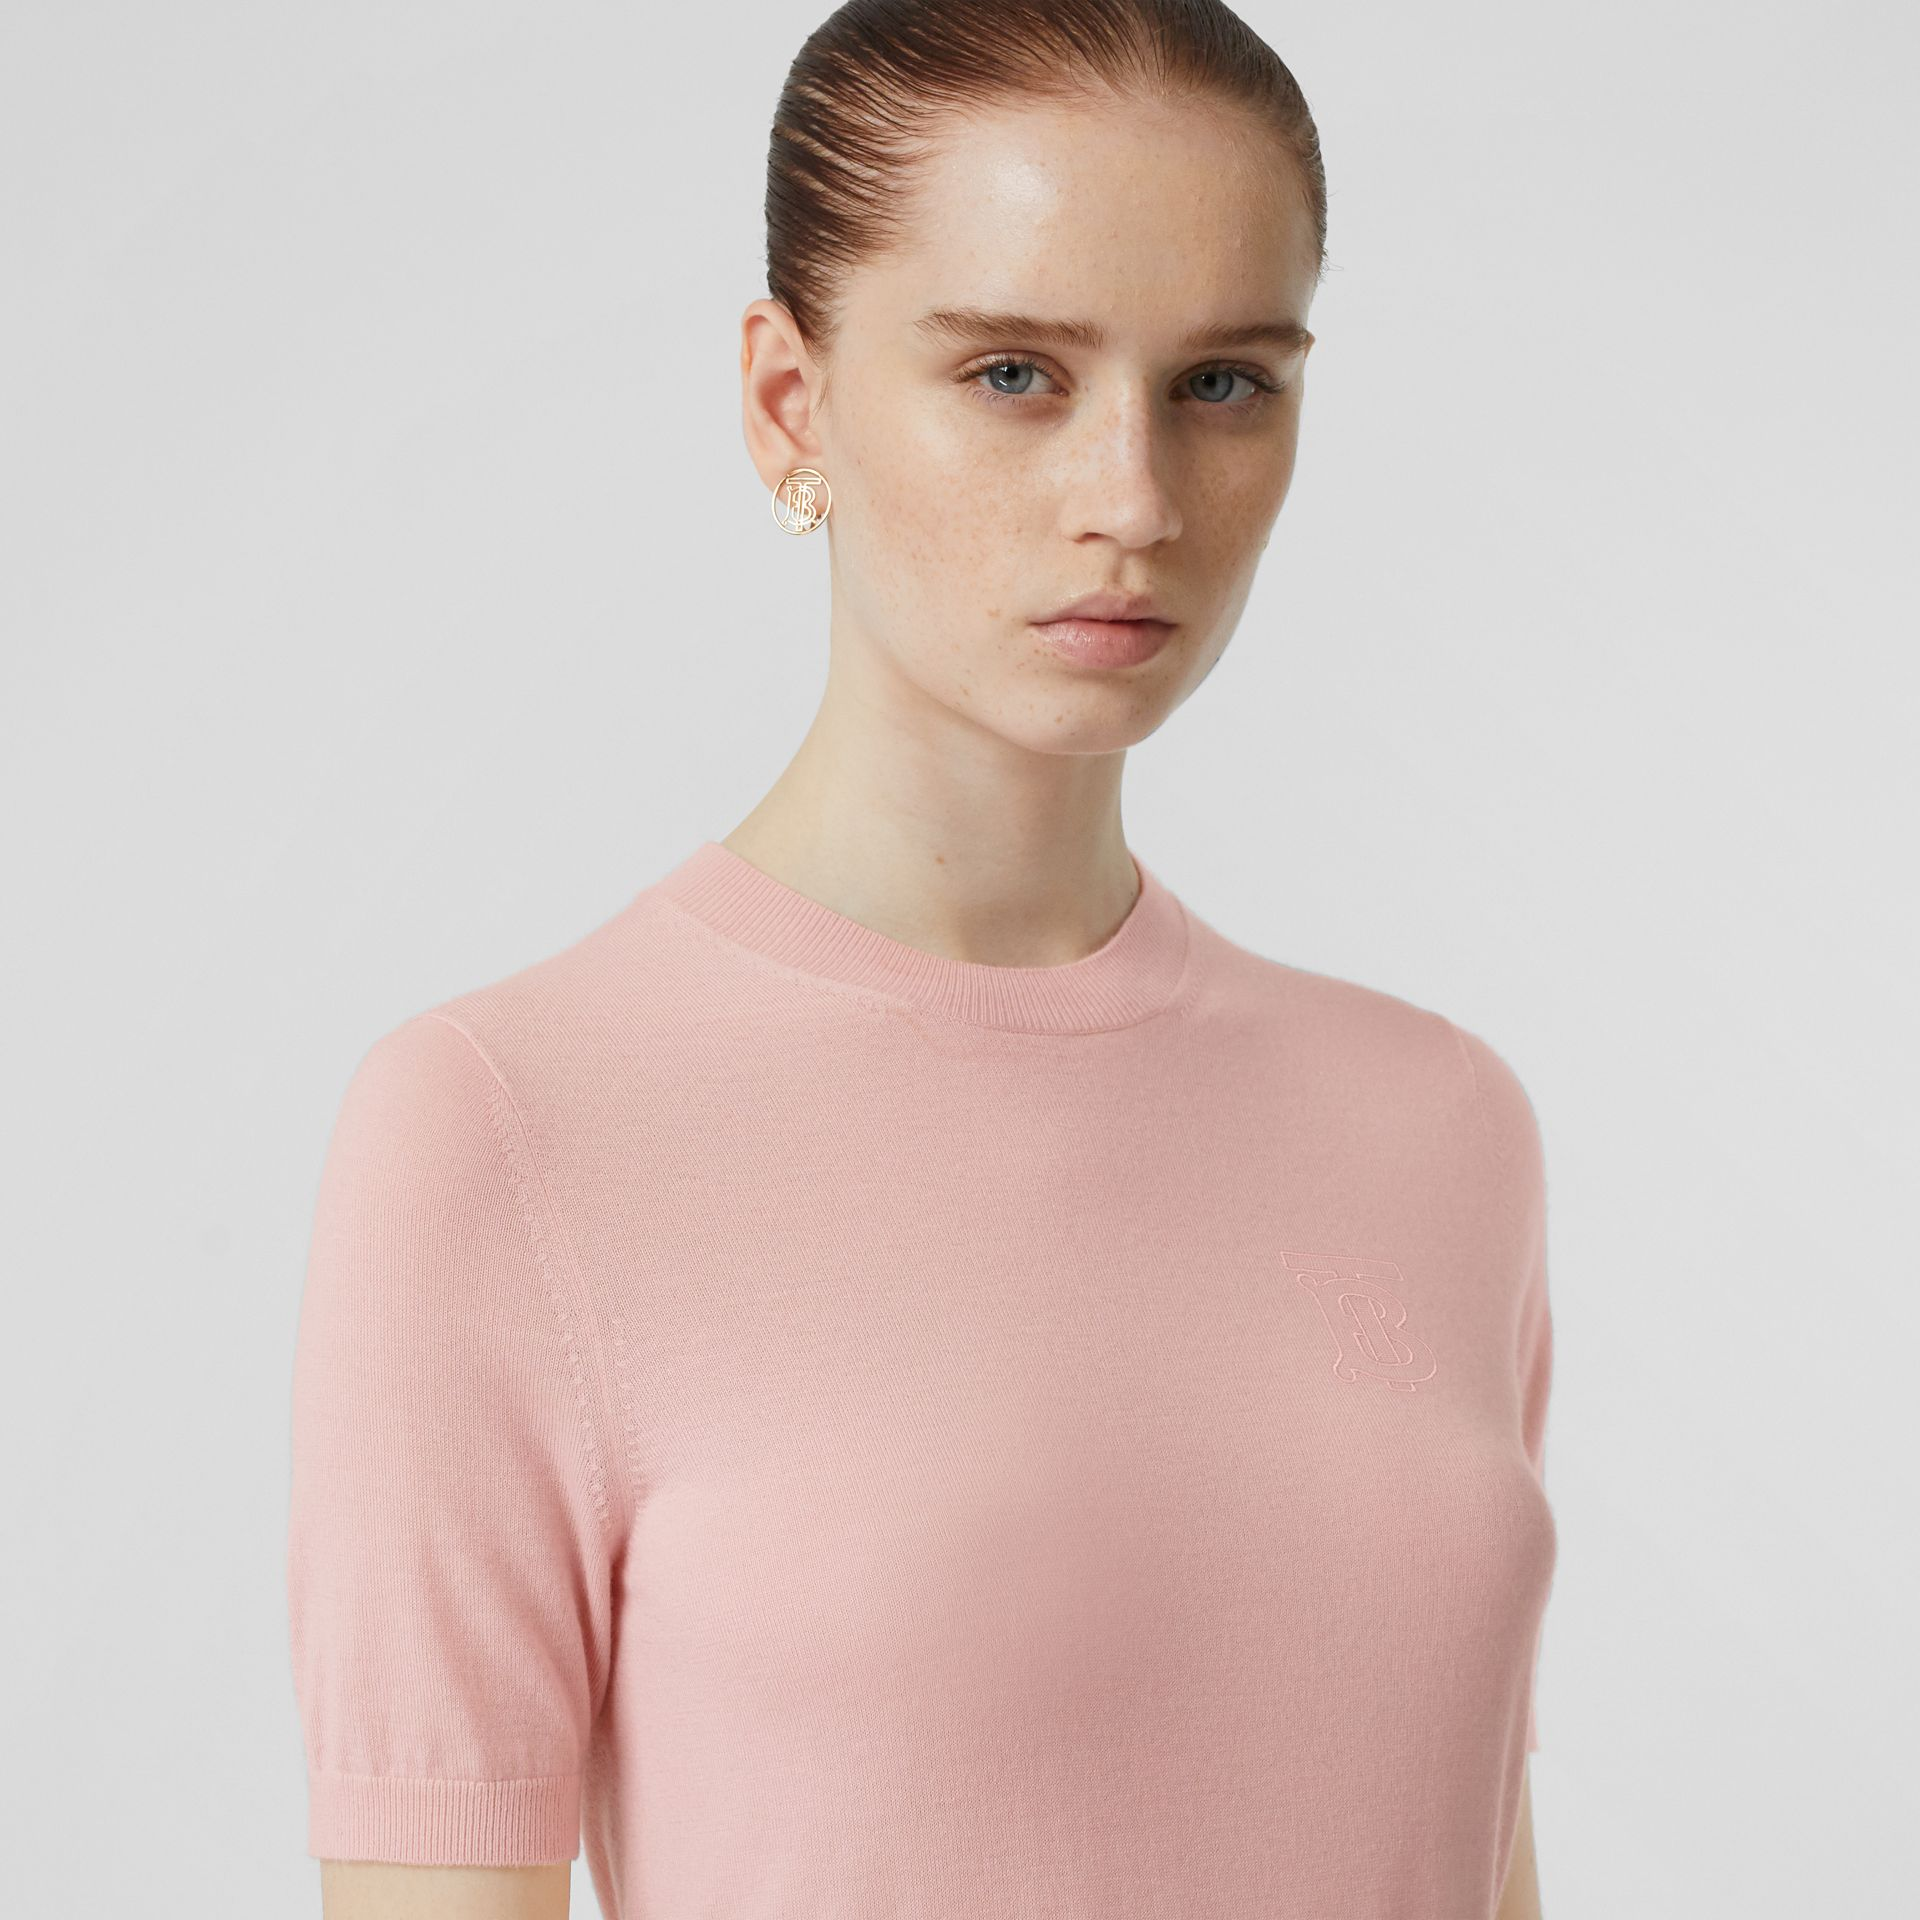 Monogram Motif Cashmere Top in Pink - Women | Burberry Hong Kong - gallery image 1